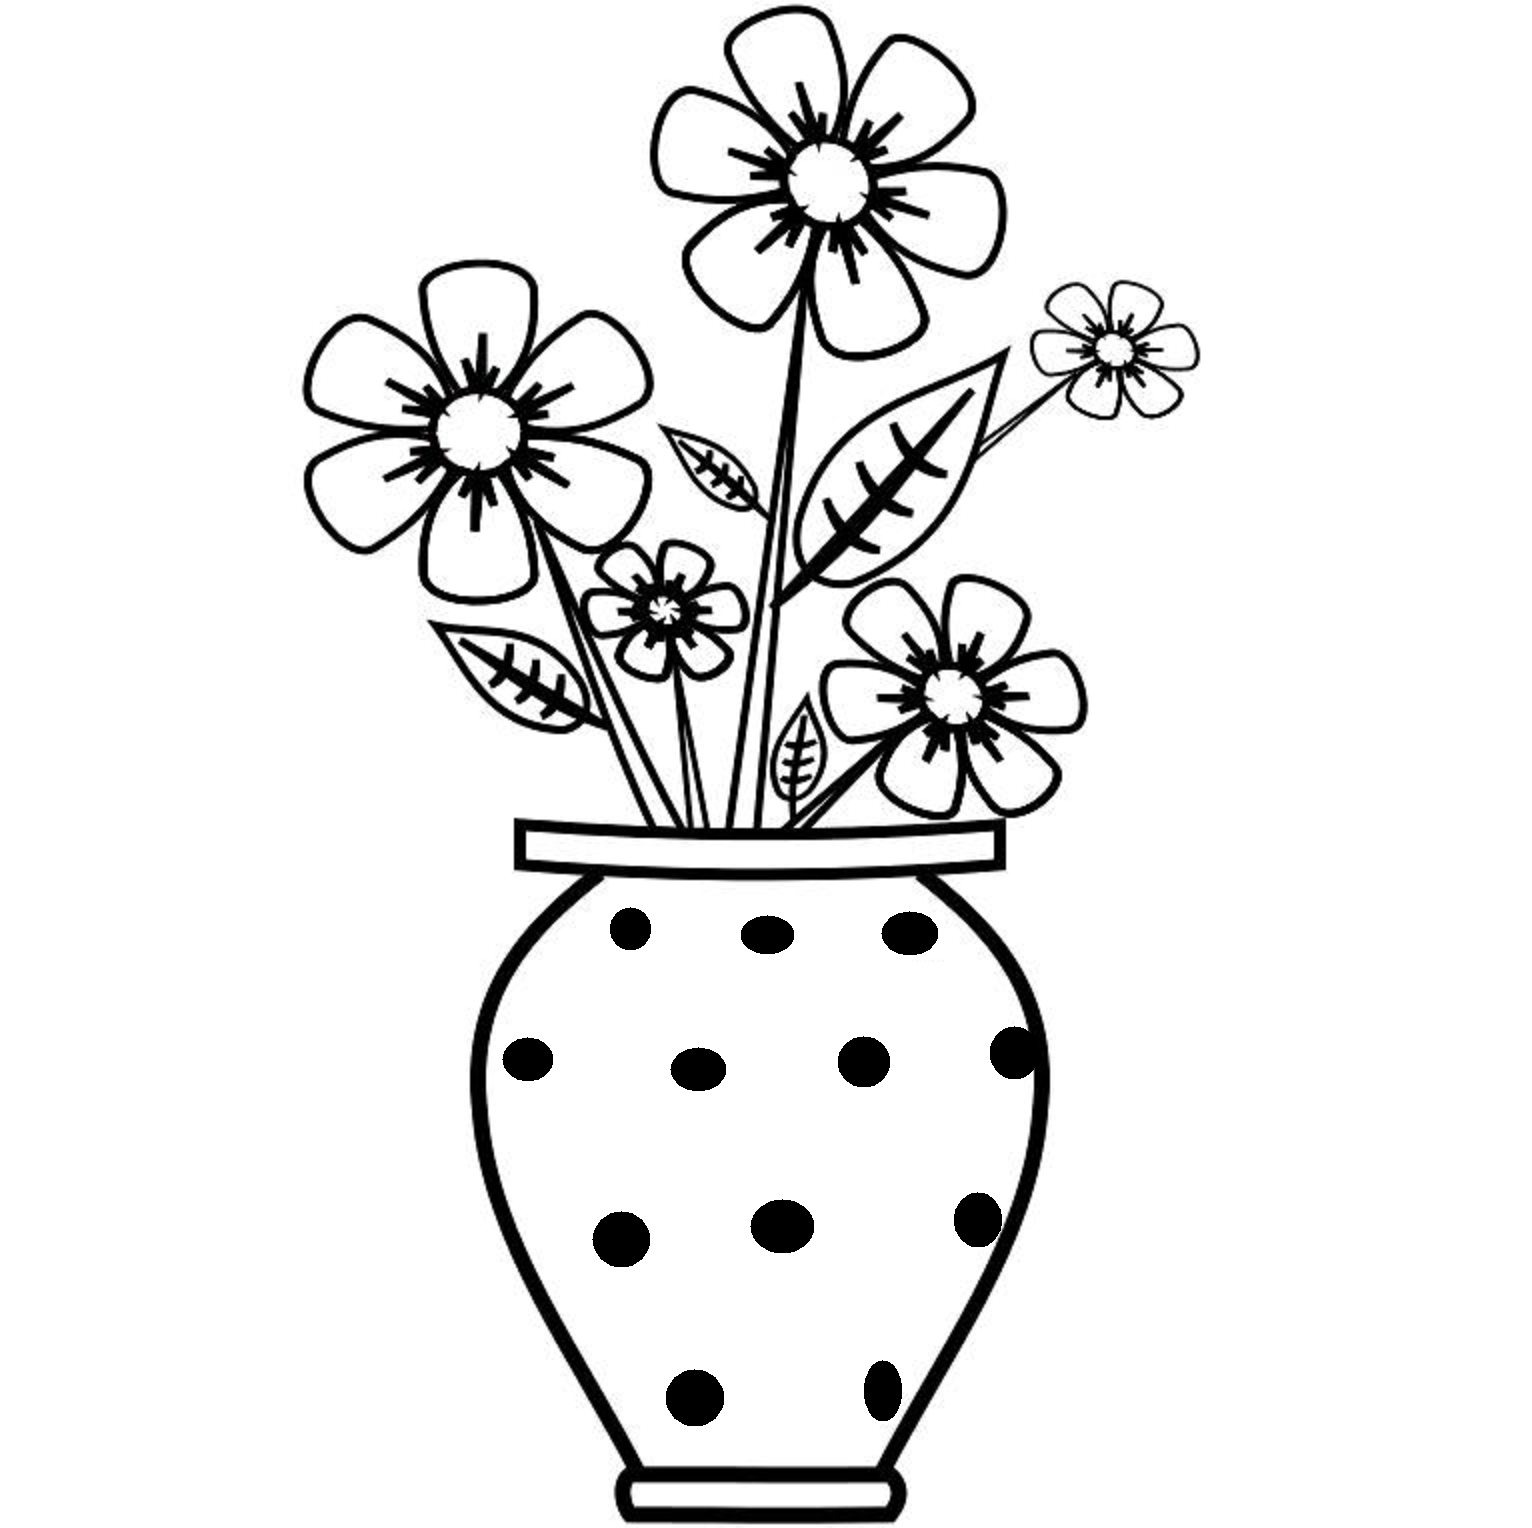 1532x1528 Vase Flower Drawing Drawn Vase Flower Vase